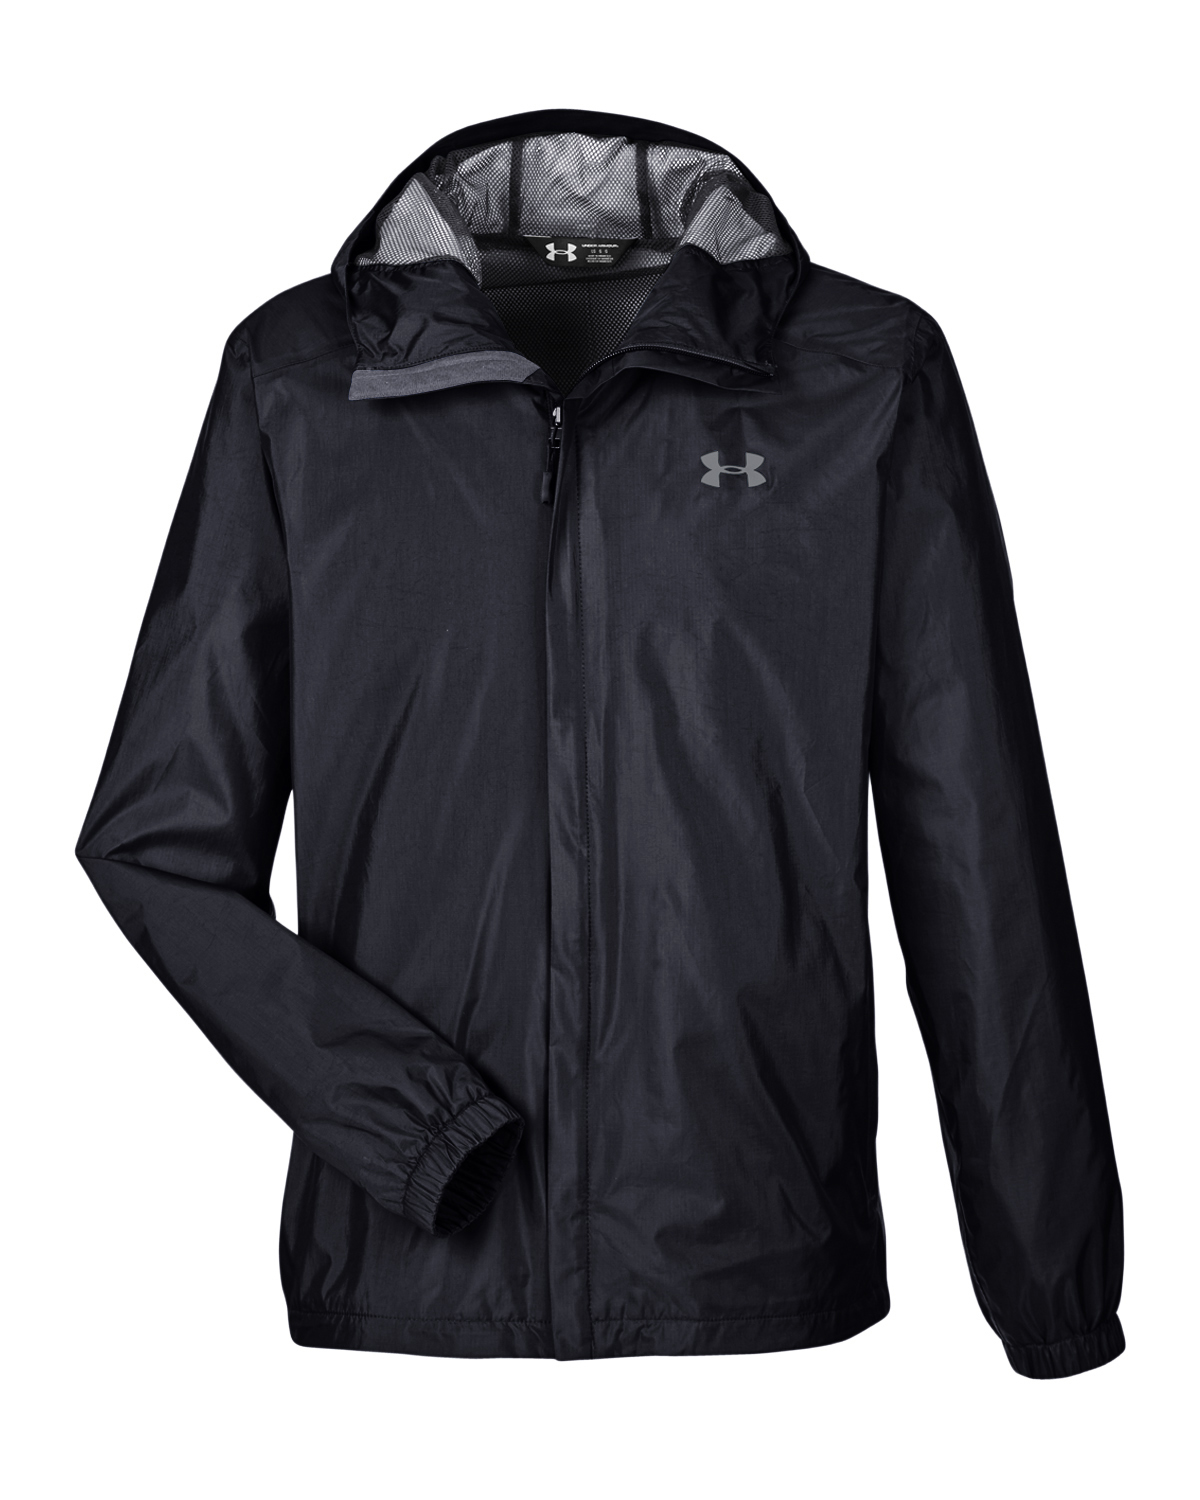 Under Armour 1292014 - Men's UA Bora Rain Jacket